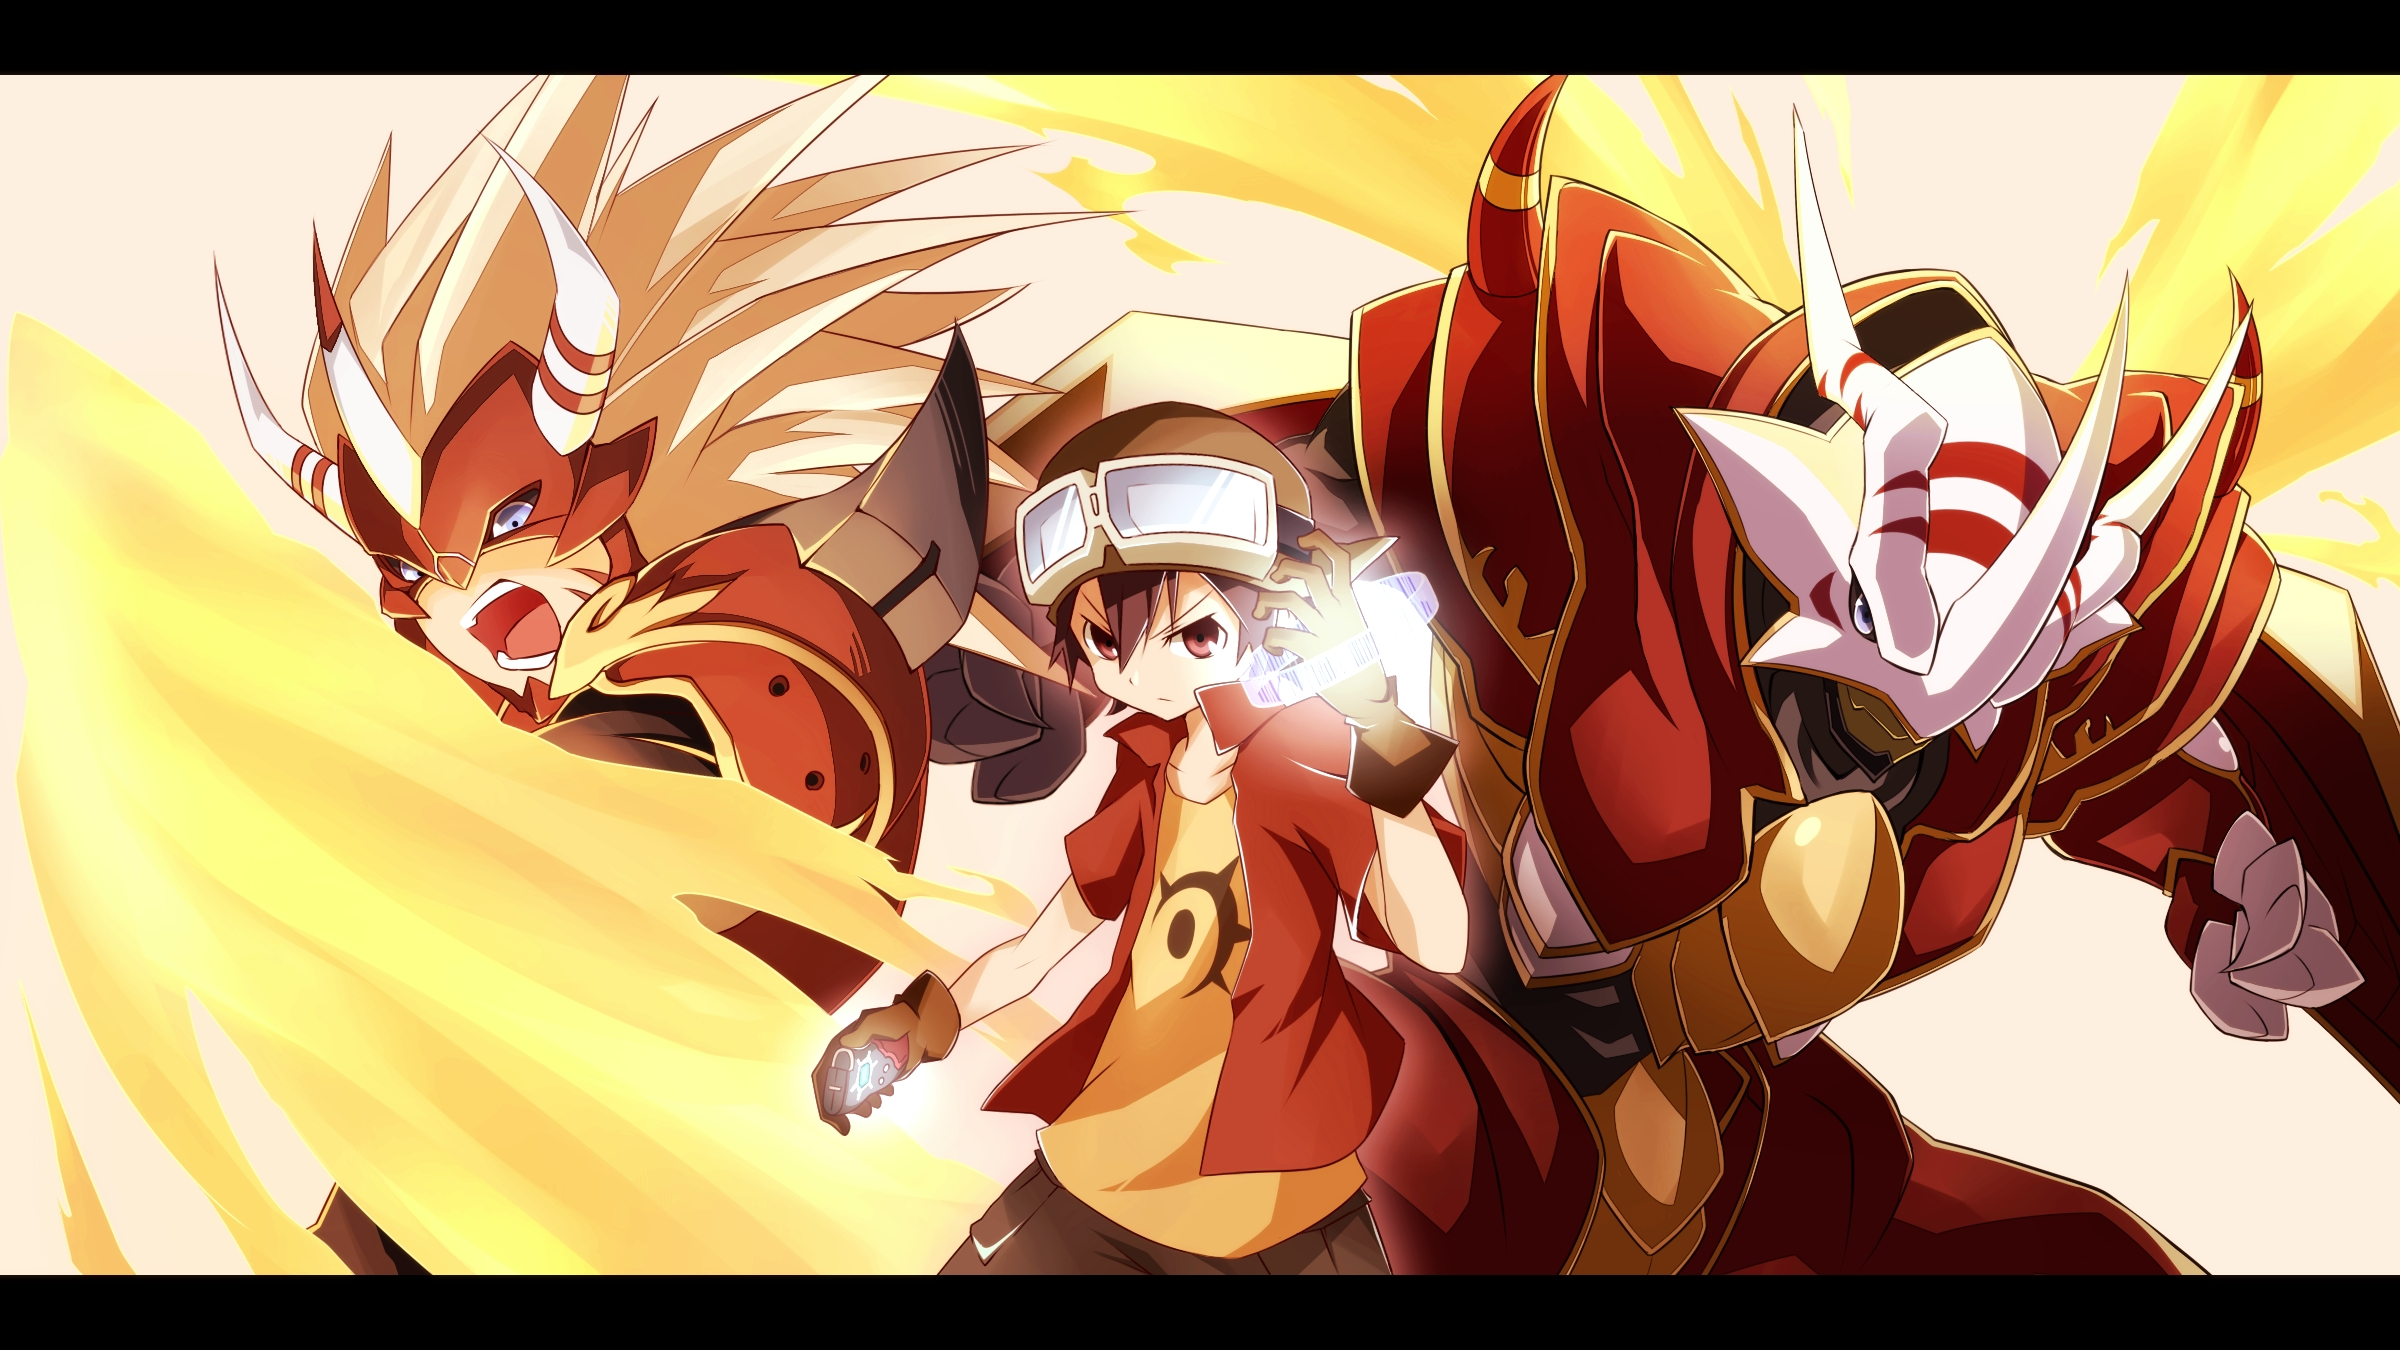 Digimon Anime New Awesome HD Wallpapers - All HD Wallpapers